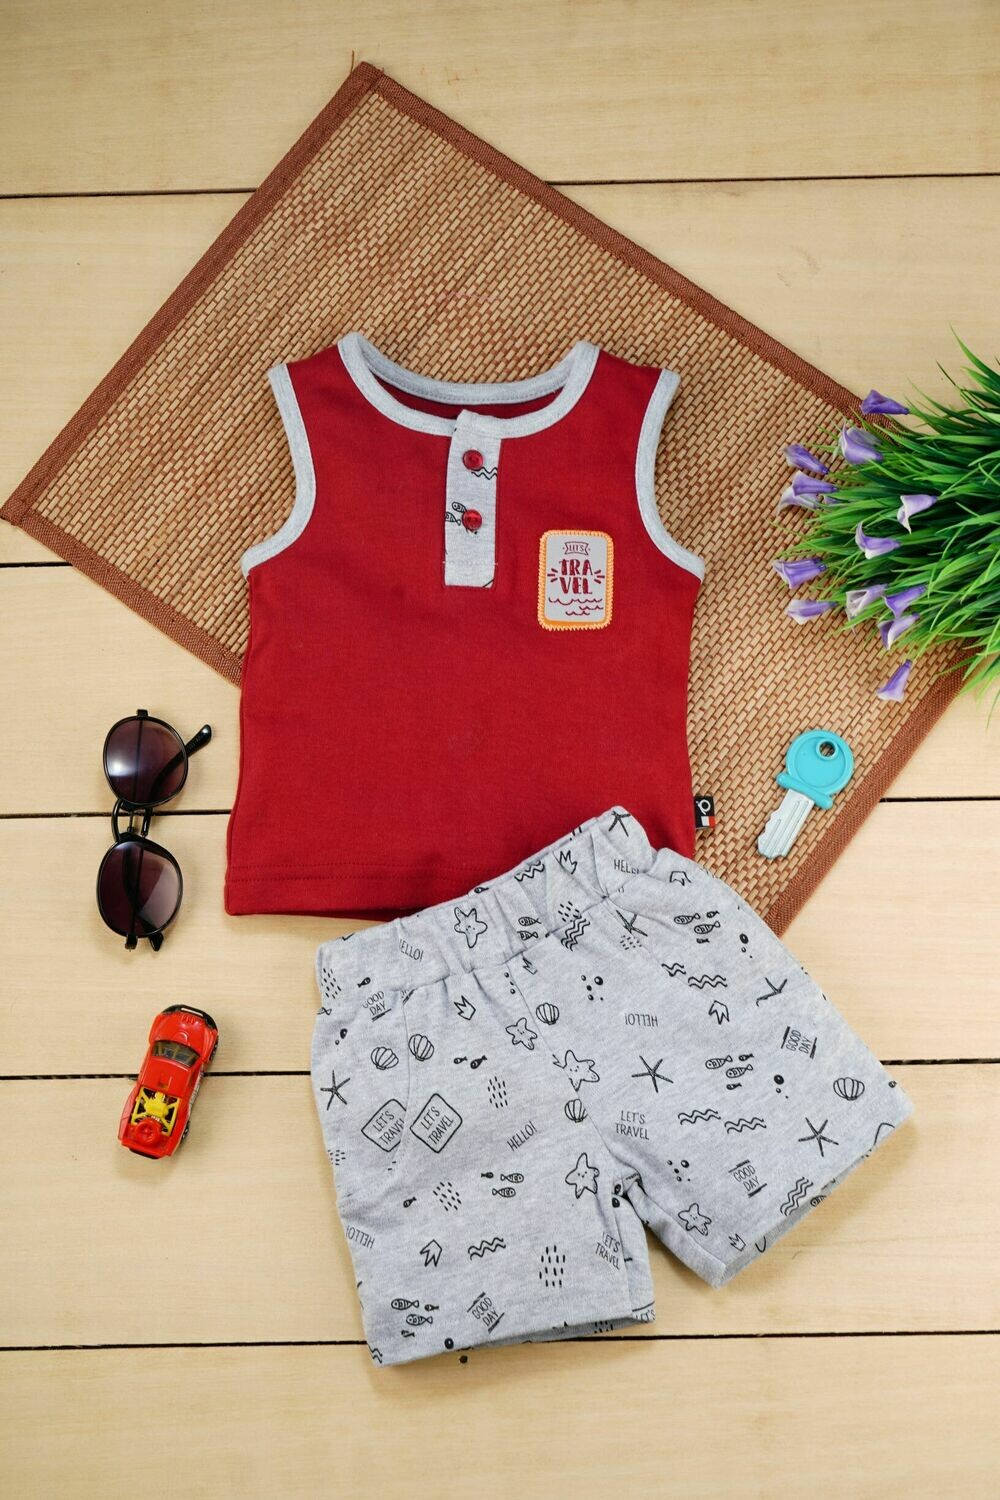 Ragnar Sleeveless Round Neck T-Shirt with Garnet Printed Shorts for Boys 12-18 Months (L)